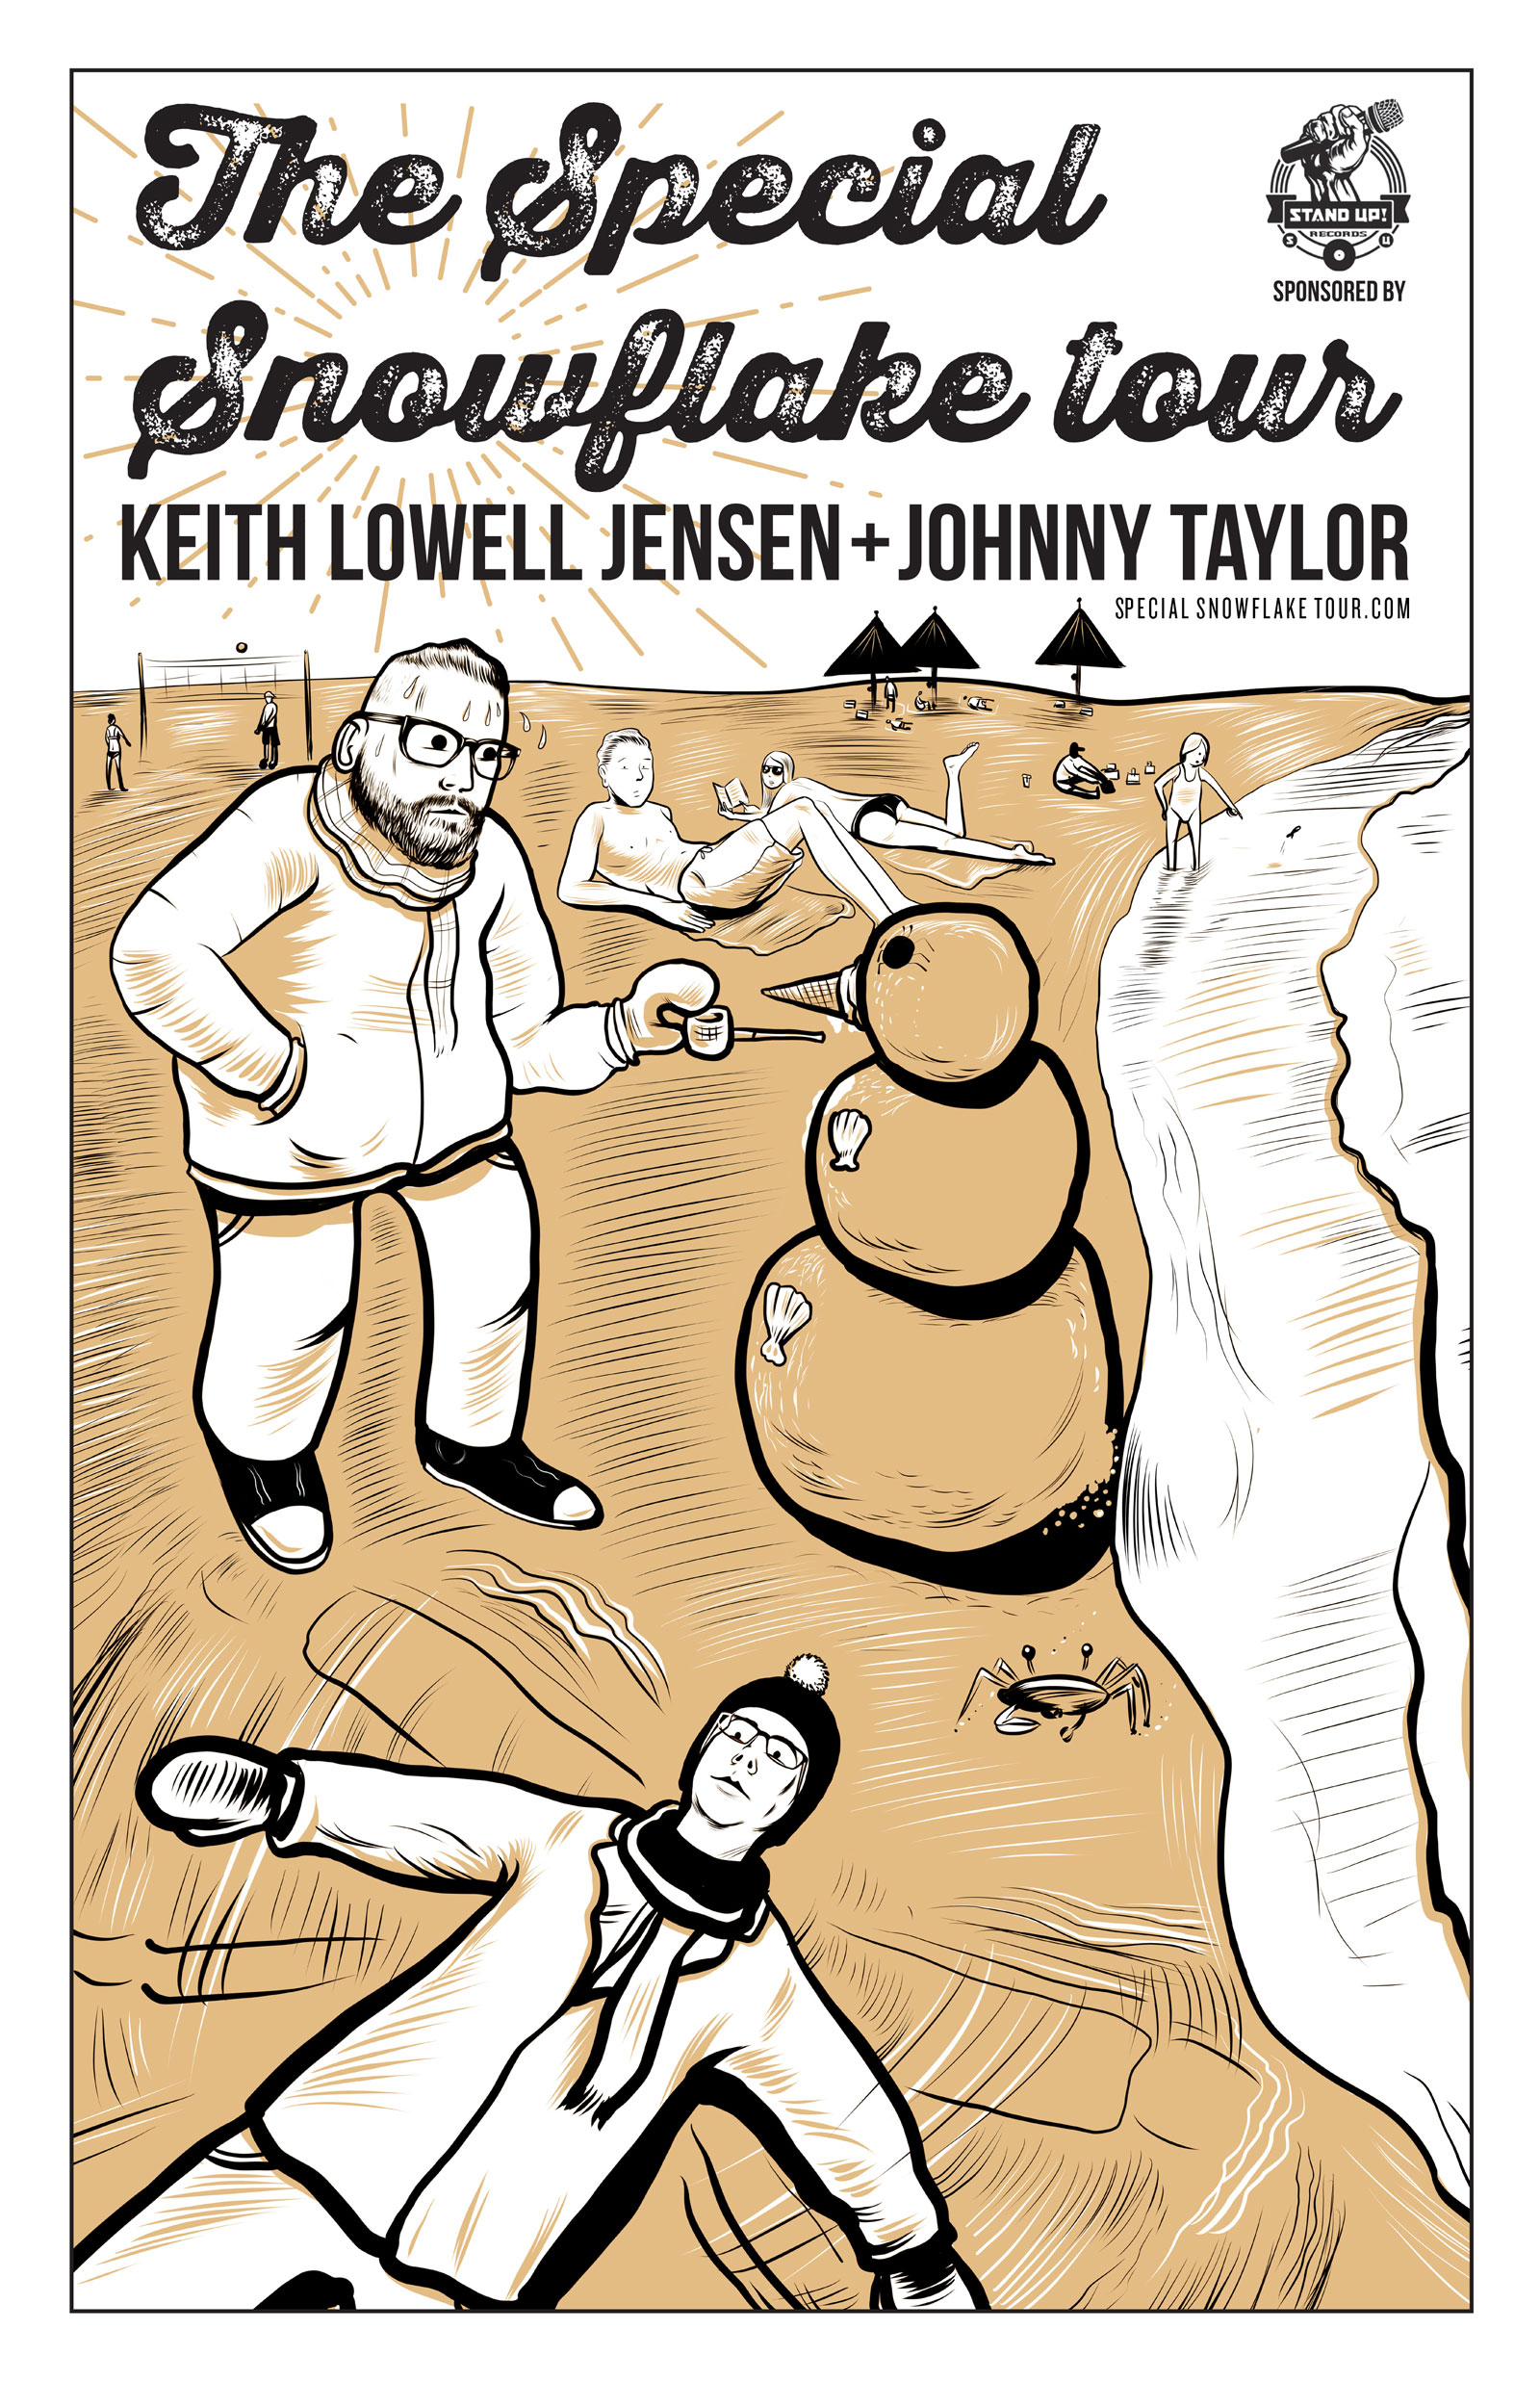 STAND UP! RECORDS SPECIAL SNOWFLAKE TOUR FEATURING KEITH LOWELL JENSEN AND JOHNNY TAYLOR CONFIRMED + DOCUMENTARY FILMING